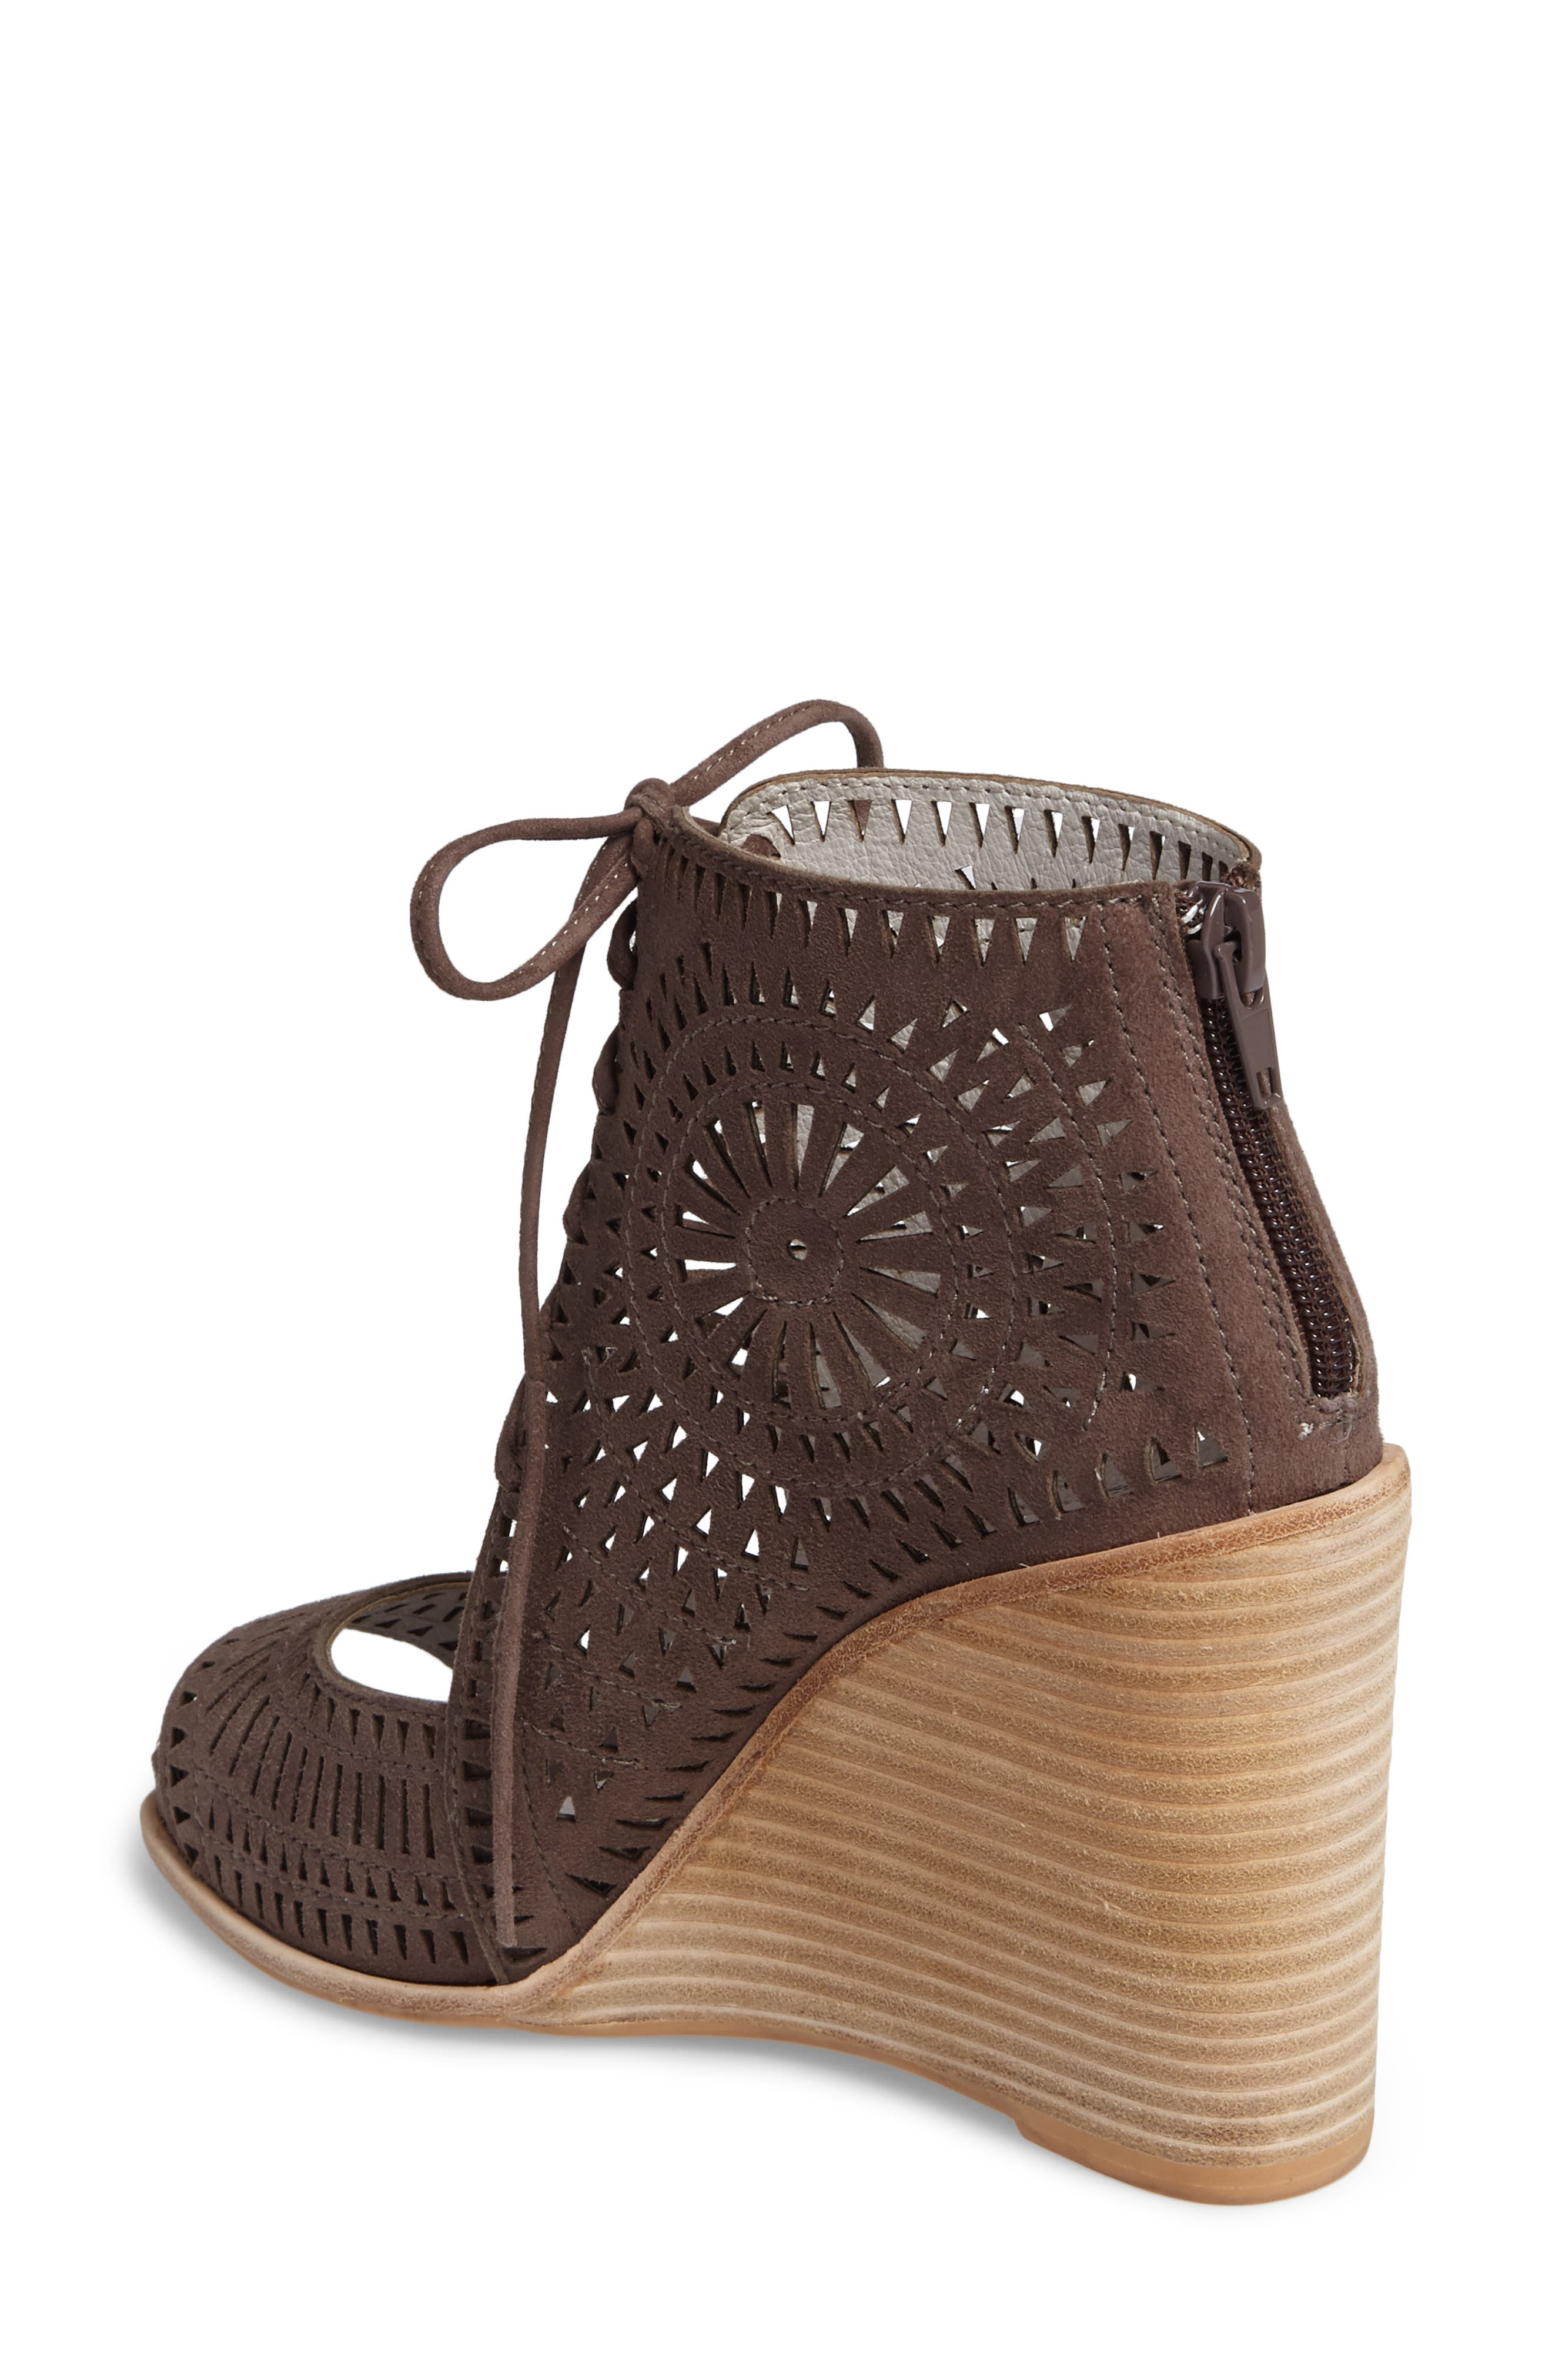 JEFFREY CAMPBELL, Rayos Perforated Wedge Sandal, Alternate thumbnail 2, color, 200